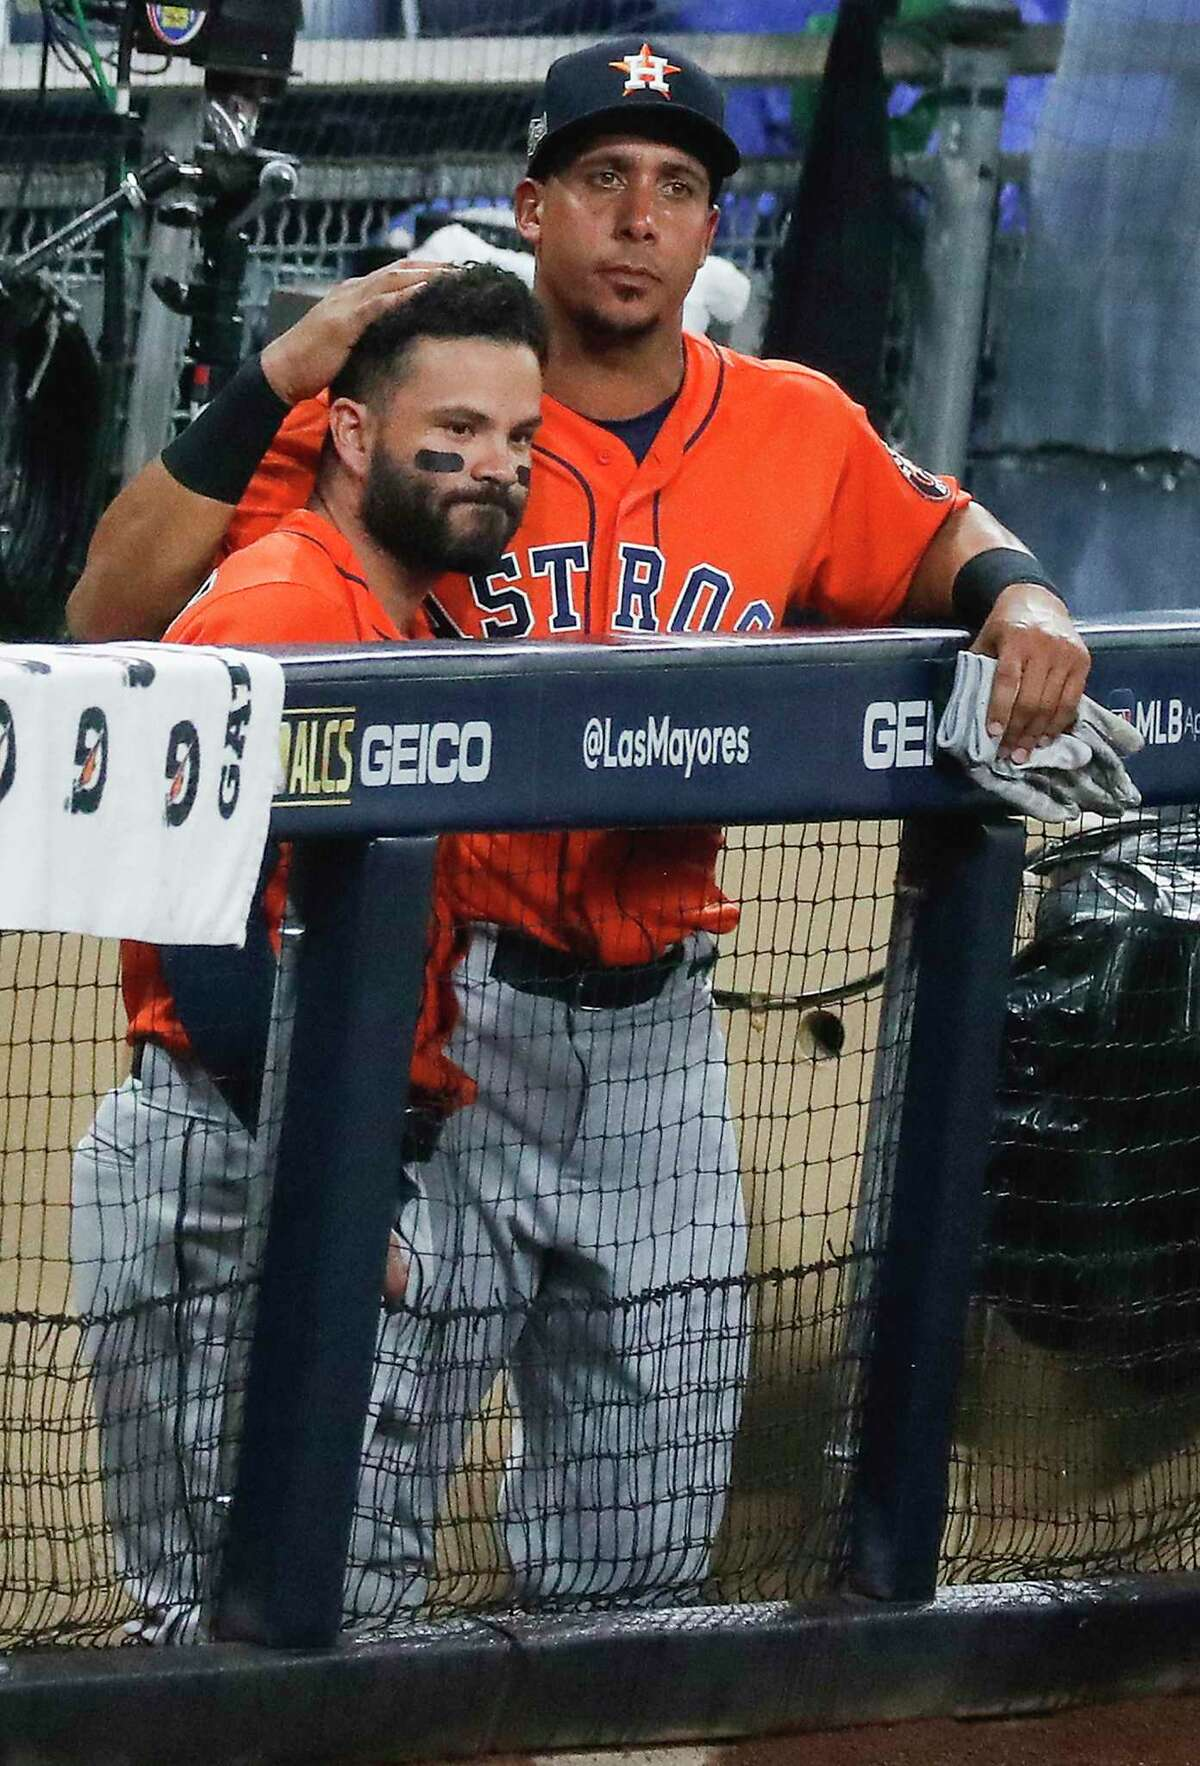 Jose Altuve commiserates with Michael Brantley after the Astros were eliminated from the 2020 postseason by a Game 7 ALCS loss to the Tampa Bay Rays.